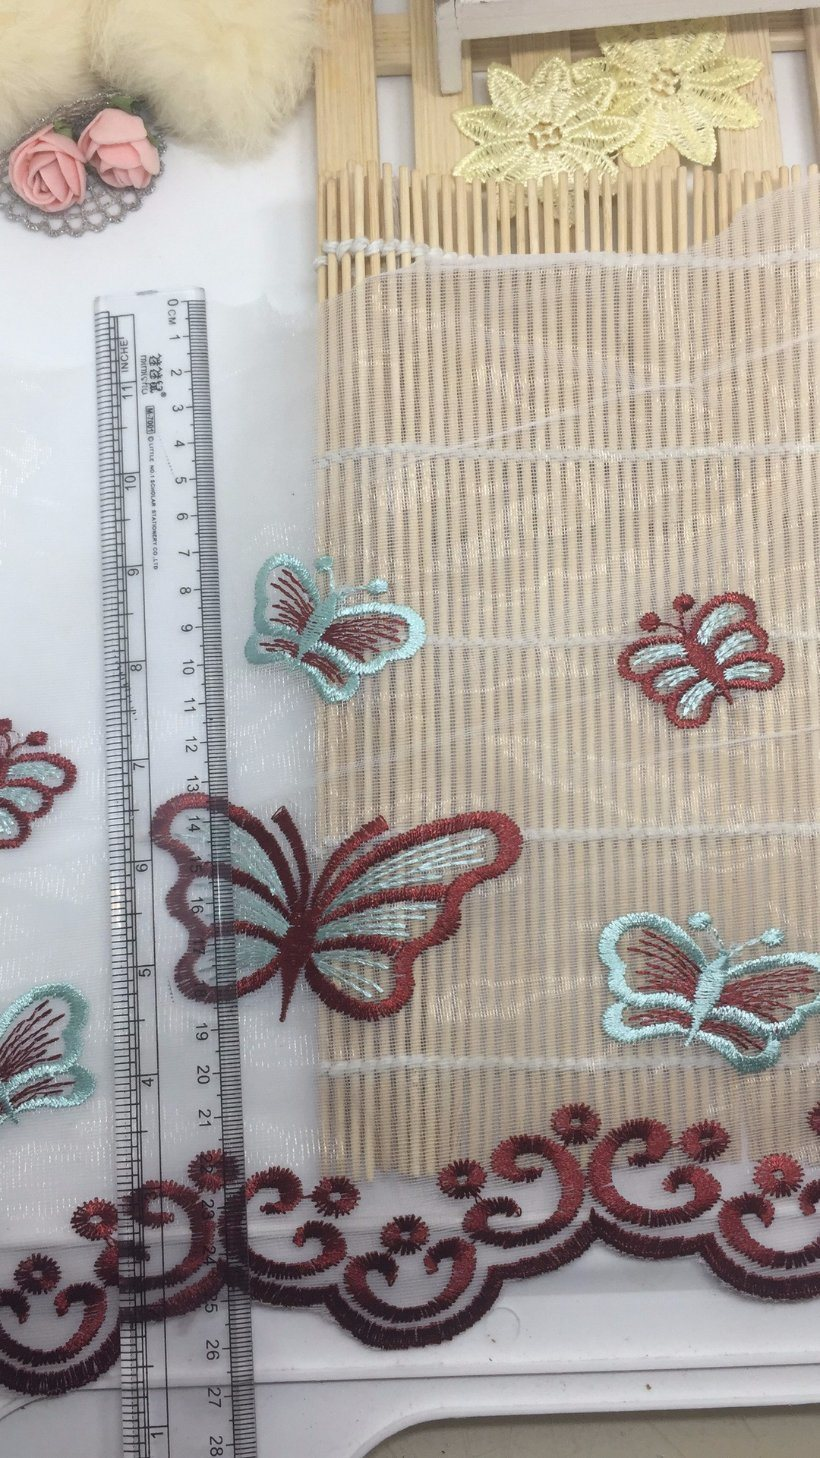 27cm Width Embroidery Trimming Net Lace for Garments & Home Textiles & Bedding Accessories